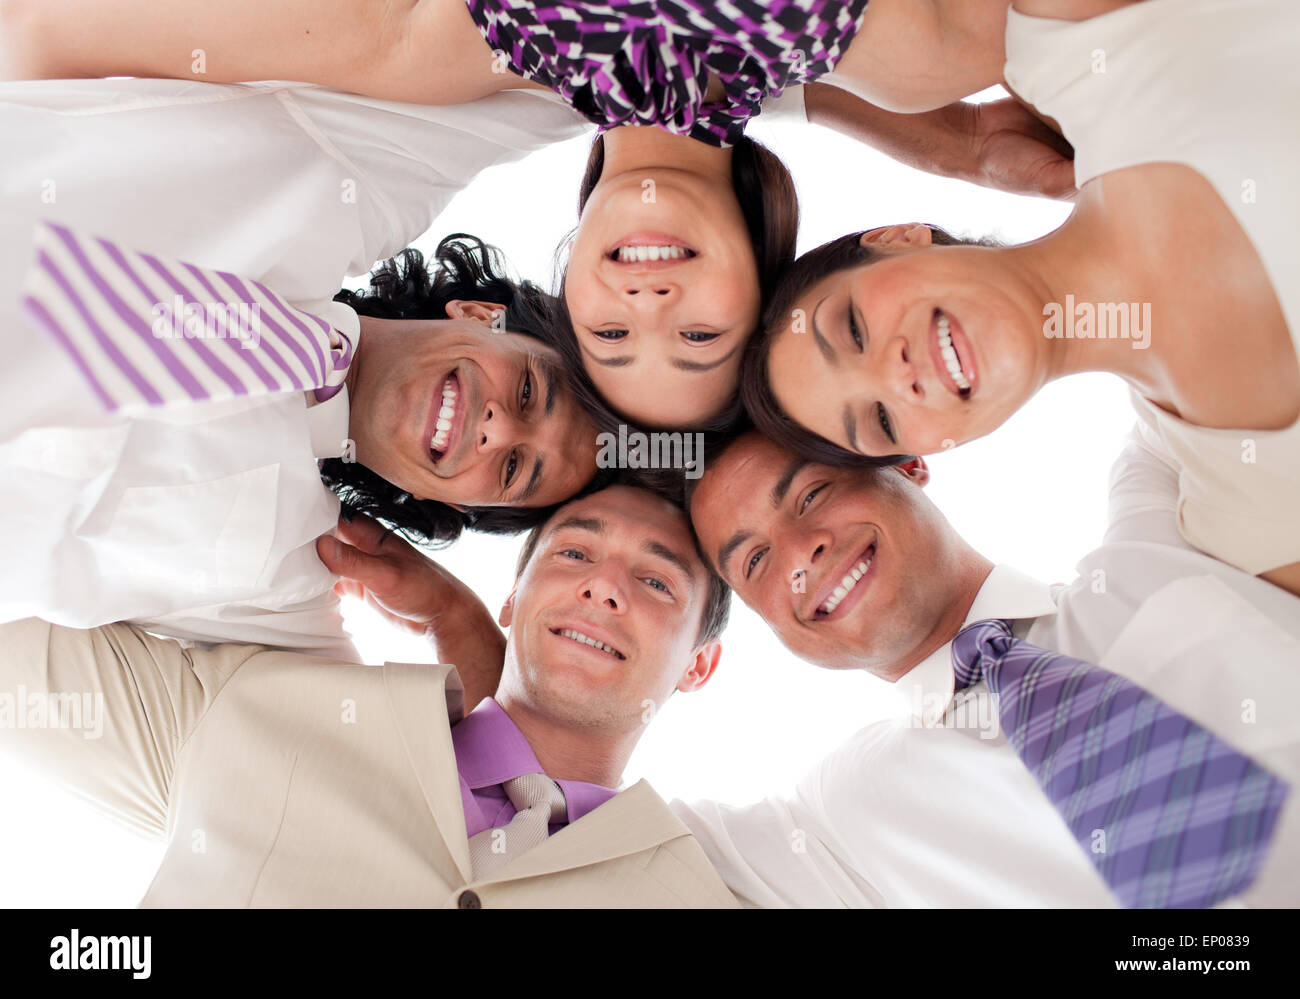 Smiling business team in a circle with heads together - Stock Image